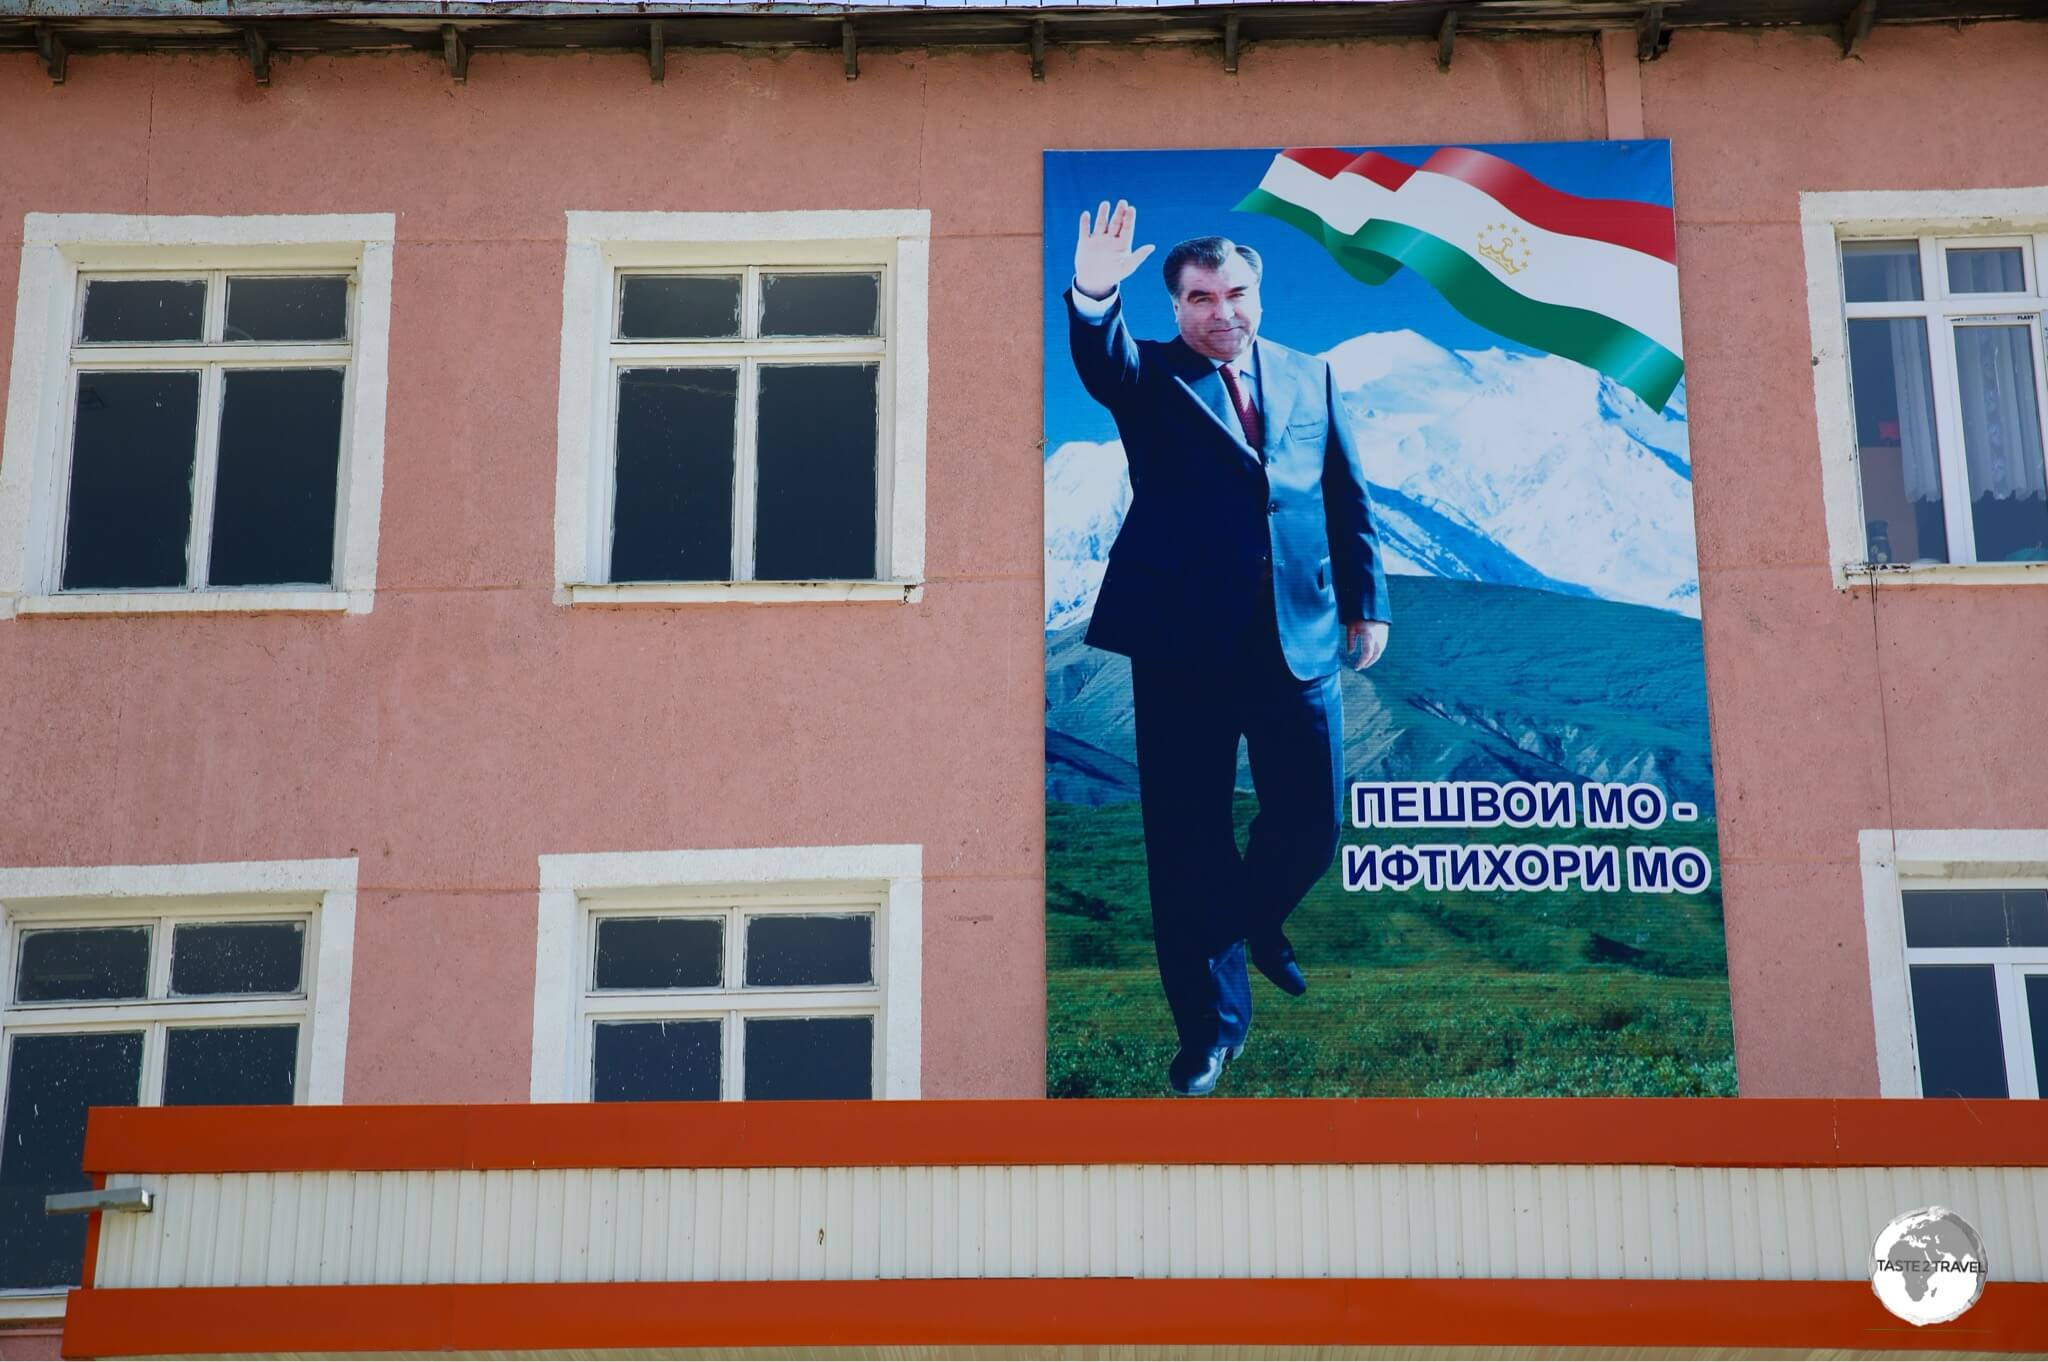 A government building in Panjakent, featuring an (obligatory) image of President Emomali Rahmon.